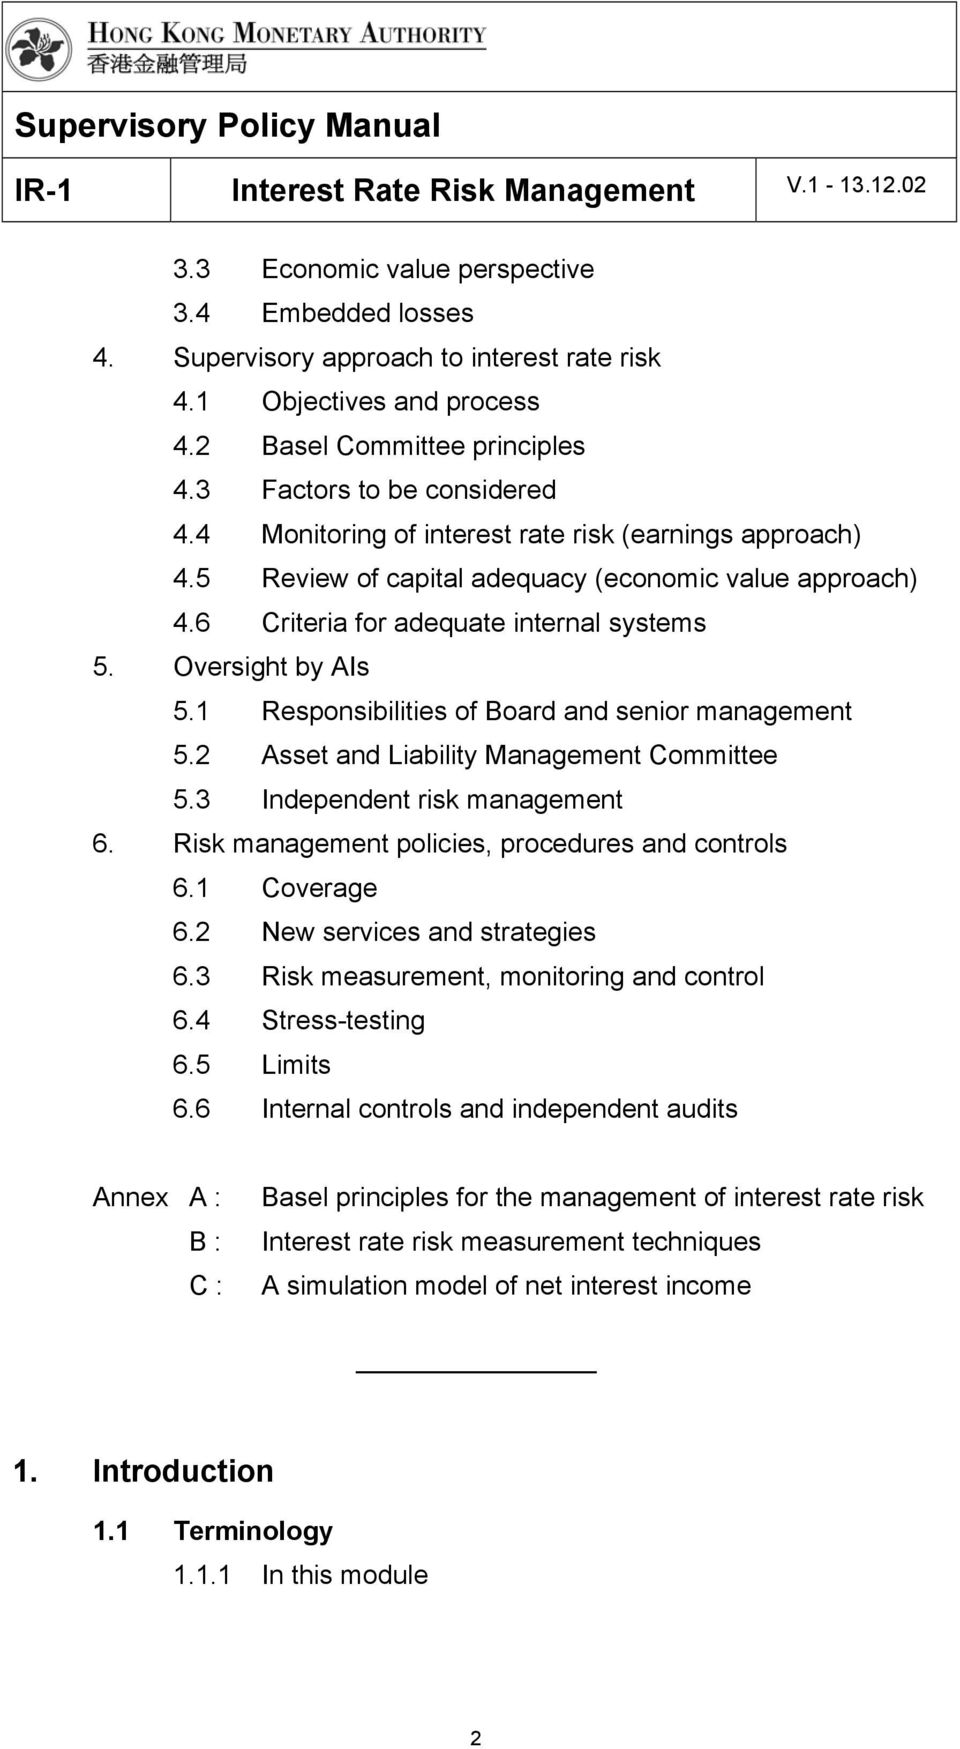 1 Responsibilities of Board and senior management 5.2 Asset and Liability Management Committee 5.3 Independent risk management 6. Risk management policies, procedures and controls 6.1 Coverage 6.